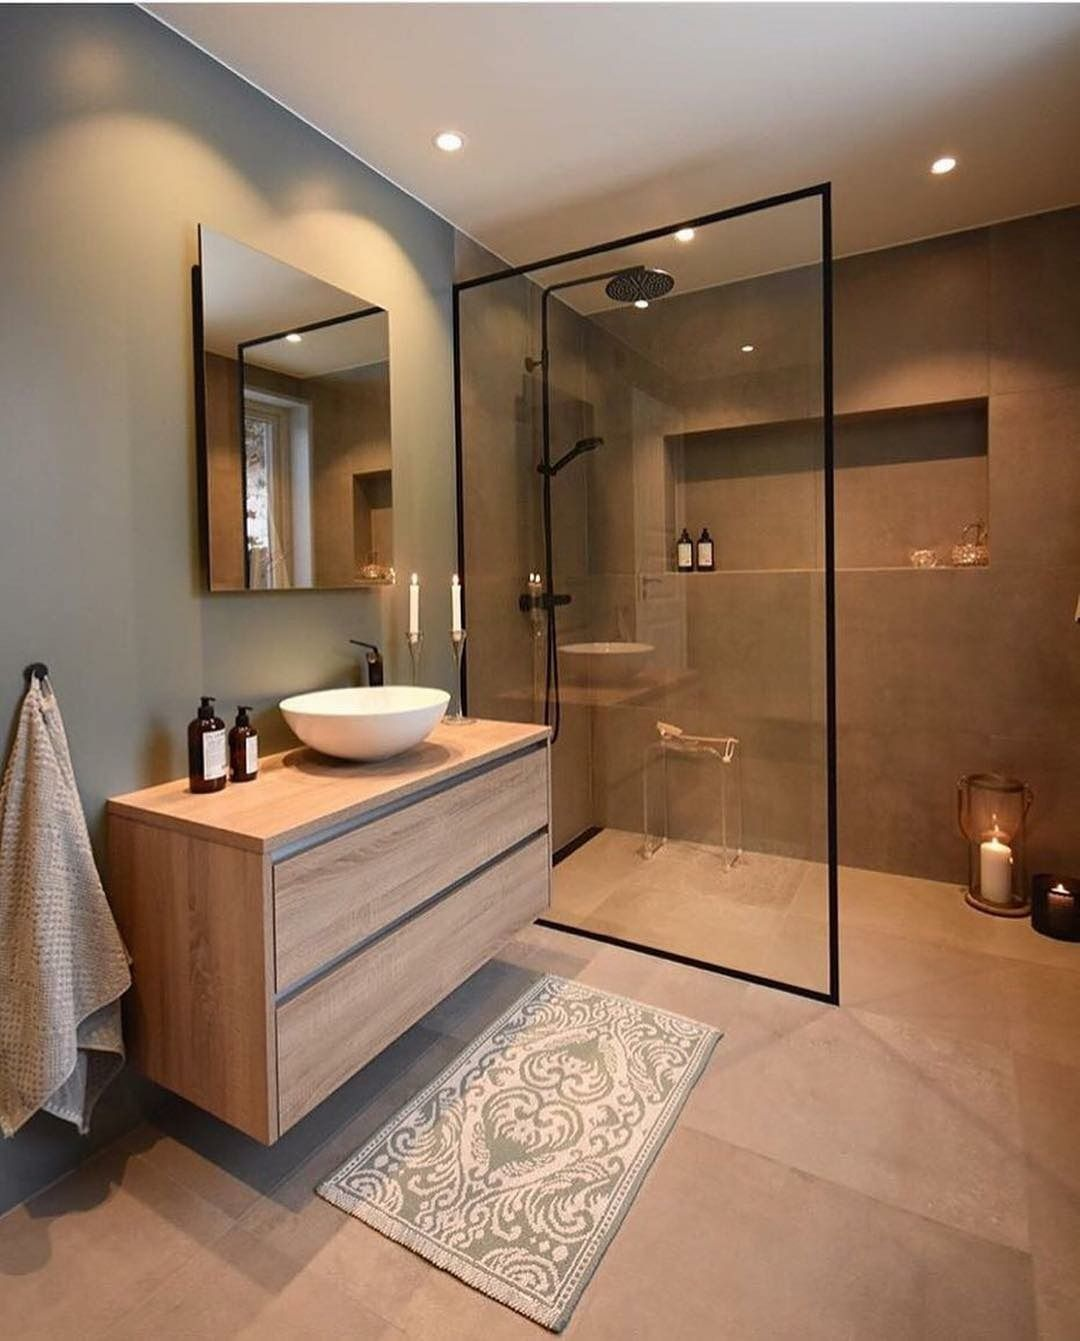 Top 5 Badezimmer Inspiration Diese Wochedas Perfekte Haus Im Skandinavischen Stil Badezimm In 2020 Bathroom Interior Design Modern Bathroom Design Minimalist Bathroom